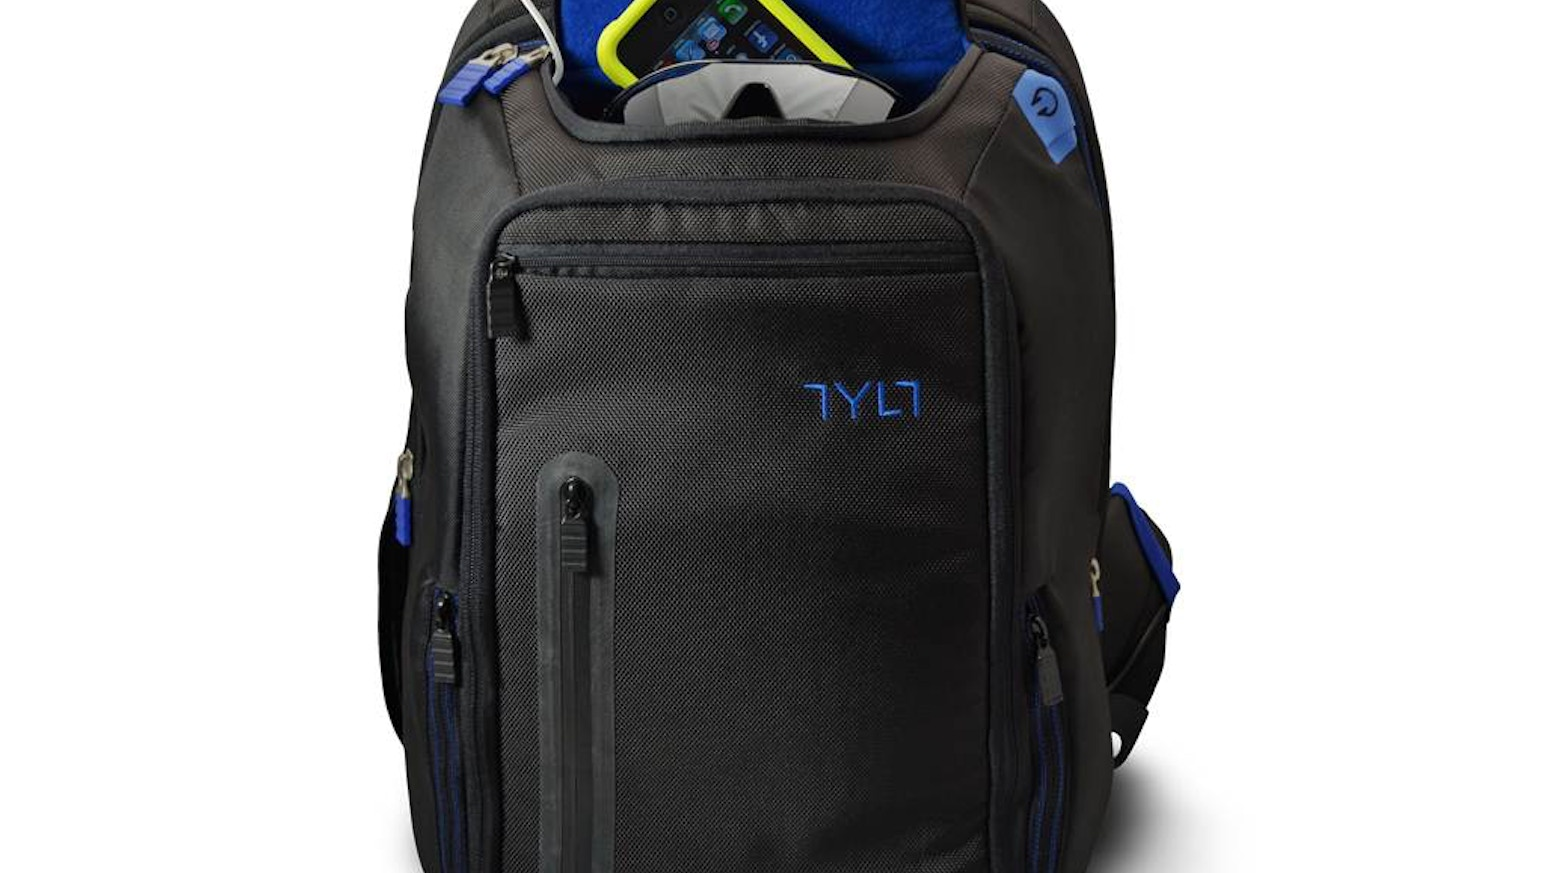 A lightweight backpack that can charge your smartphone 4 times or an iPad  one full charge ce4ce51e269be